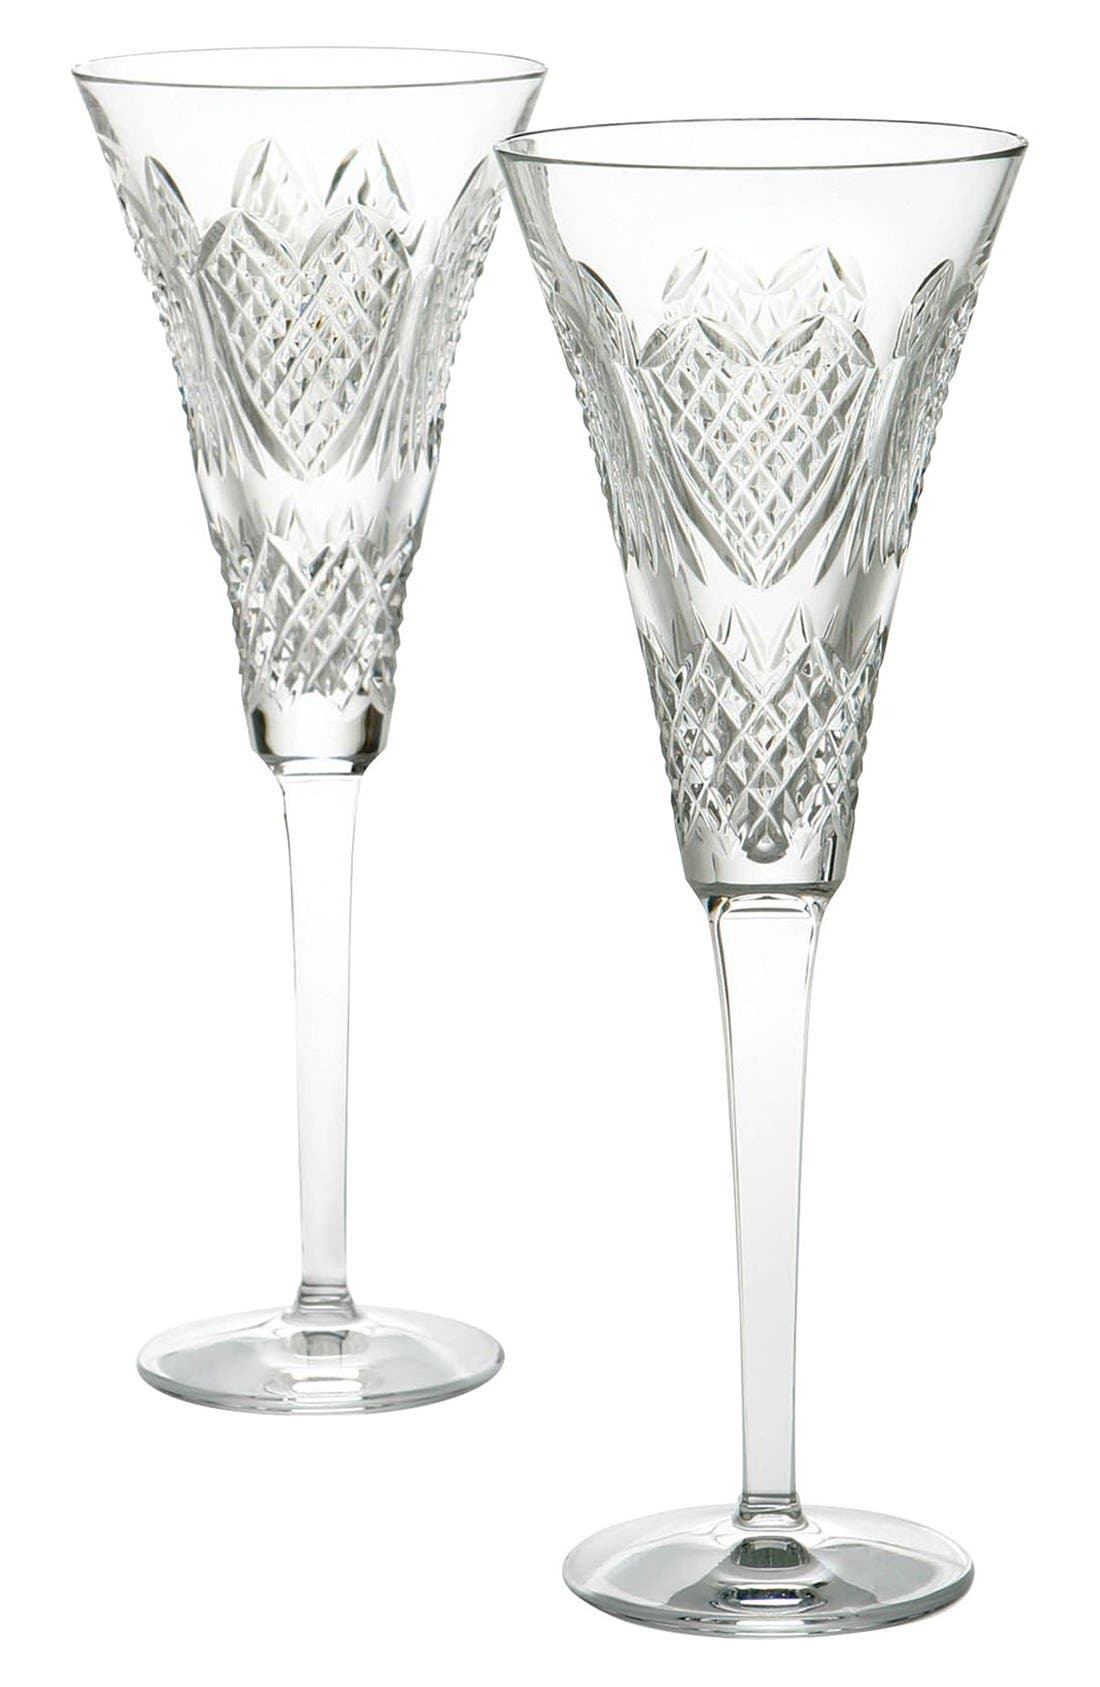 Main Image - Waterford 'Wedding Heirloom' Lead Crystal Champagne Flutes (Set of 2)